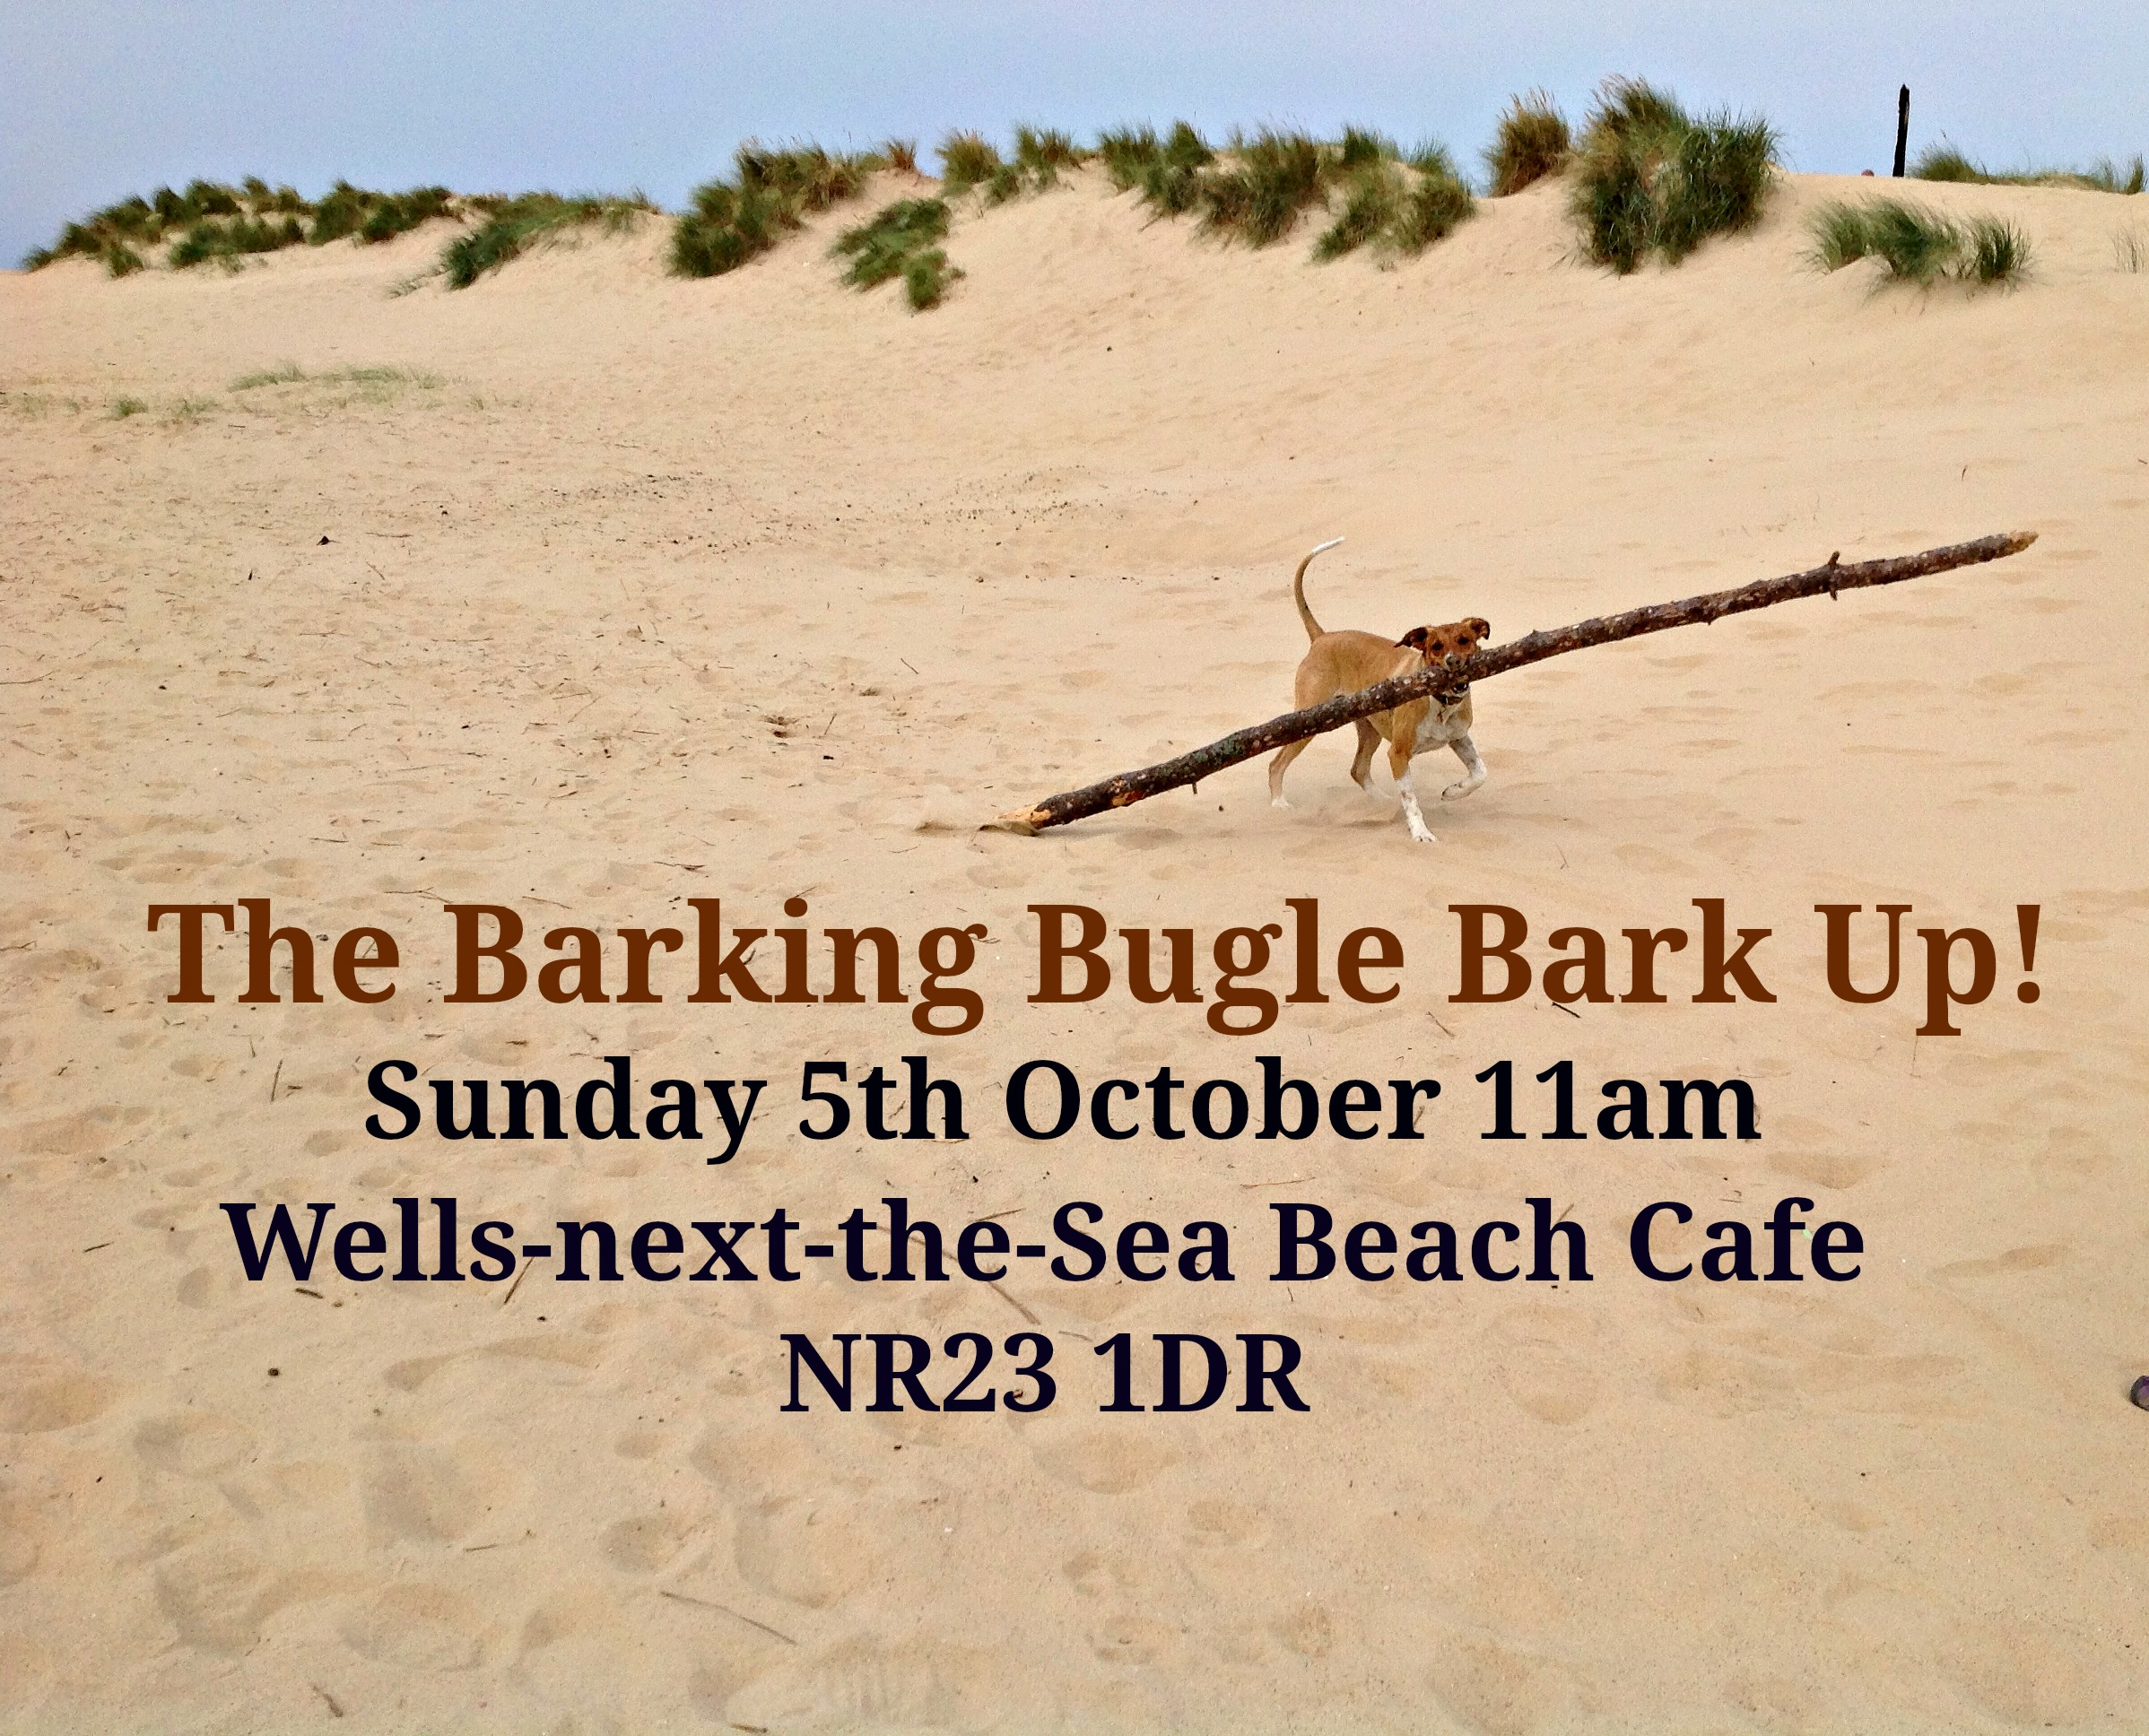 The Barking Bugle Bark Up!, Wells-next-the-Sea Beach Cafe | Calling All Dogs!  Come along to the Barking Bugle Bark Up! A social event especially for dogs and their 2 legged pets.  | Barking Bugle, PACT Animal Sanctuary, Dogs, Dog walk,